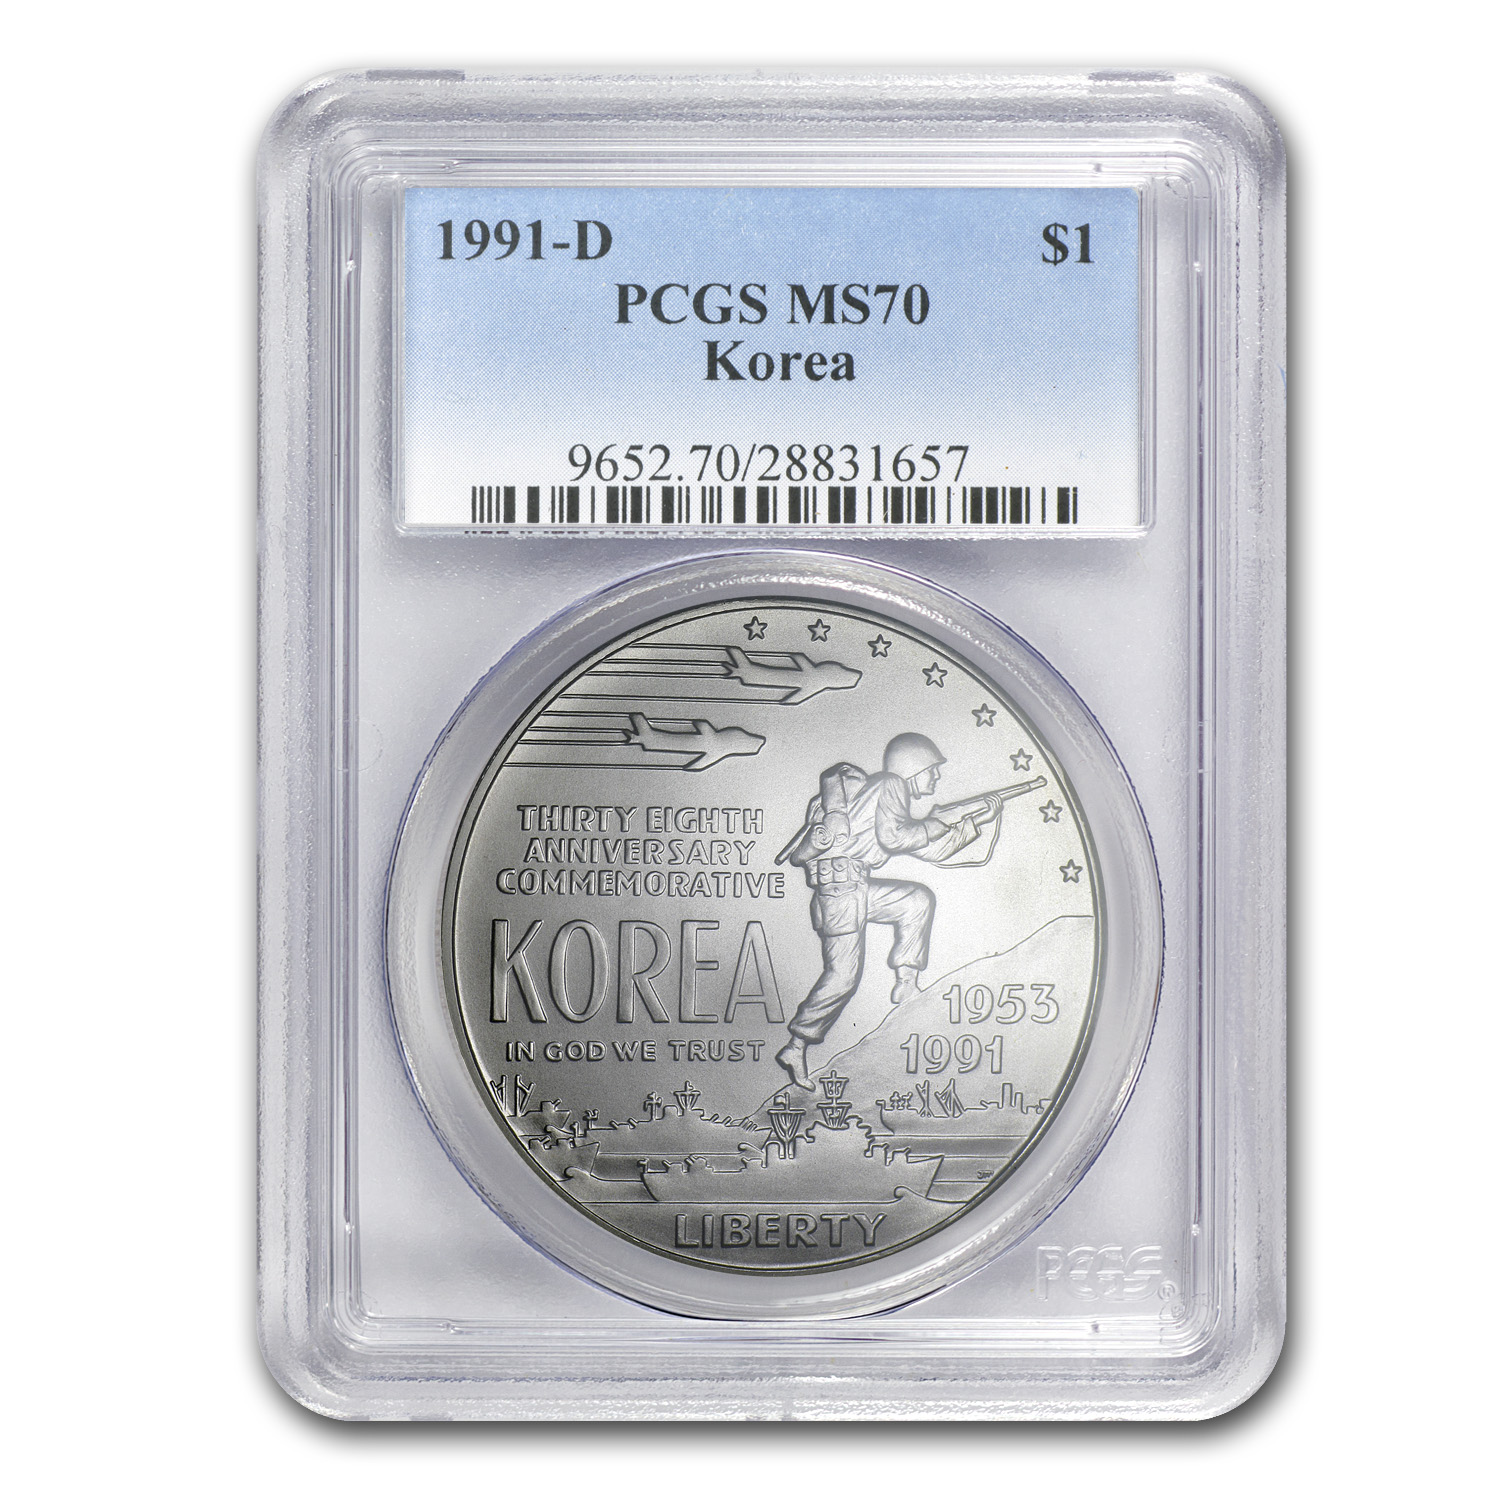 1991-D Korean War $1 Silver Commemorative - MS-70 PCGS